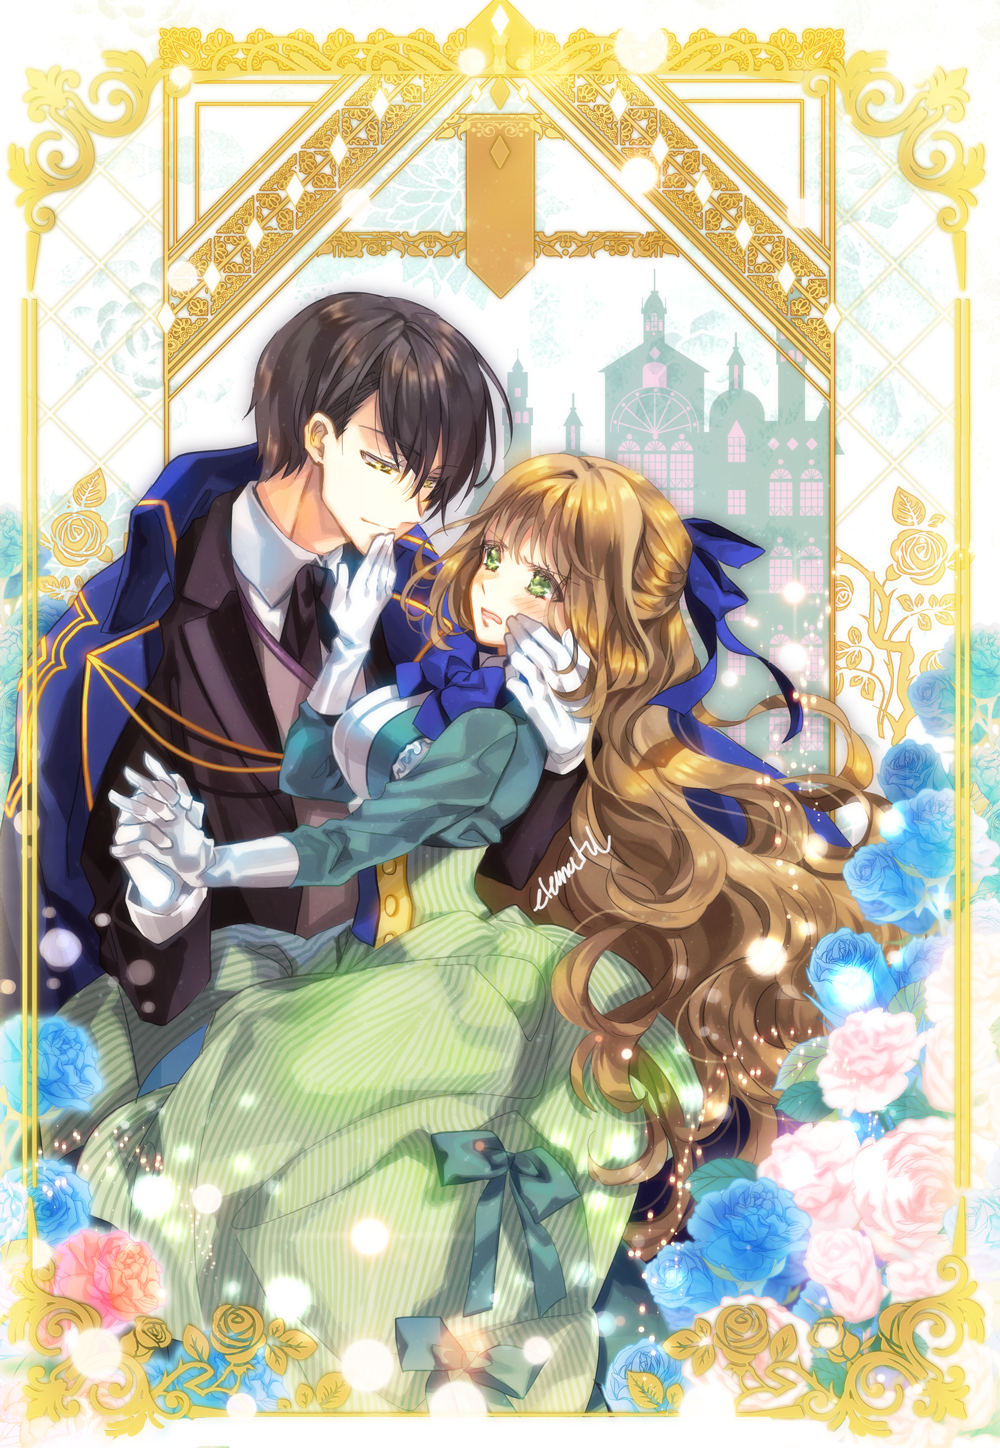 1boy 1girl artist_name black_hair black_neckwear blue_bow blue_neckwear blush bow breasts brown_hair check_character check_copyright dress dress_bow elemental eye_contact flower geunyeoga_gongjagjeolo_gaya_haessdeon_sajeong gloves green_bow green_dress green_eyes hair_bow hand_on_another's_chin hetero highres holding_hands long_sleeves looking_at_another medium_breasts noah_beolsteo_winnite open_mouth outdoors raeliana_mcmillan white_gloves yellow_eyes